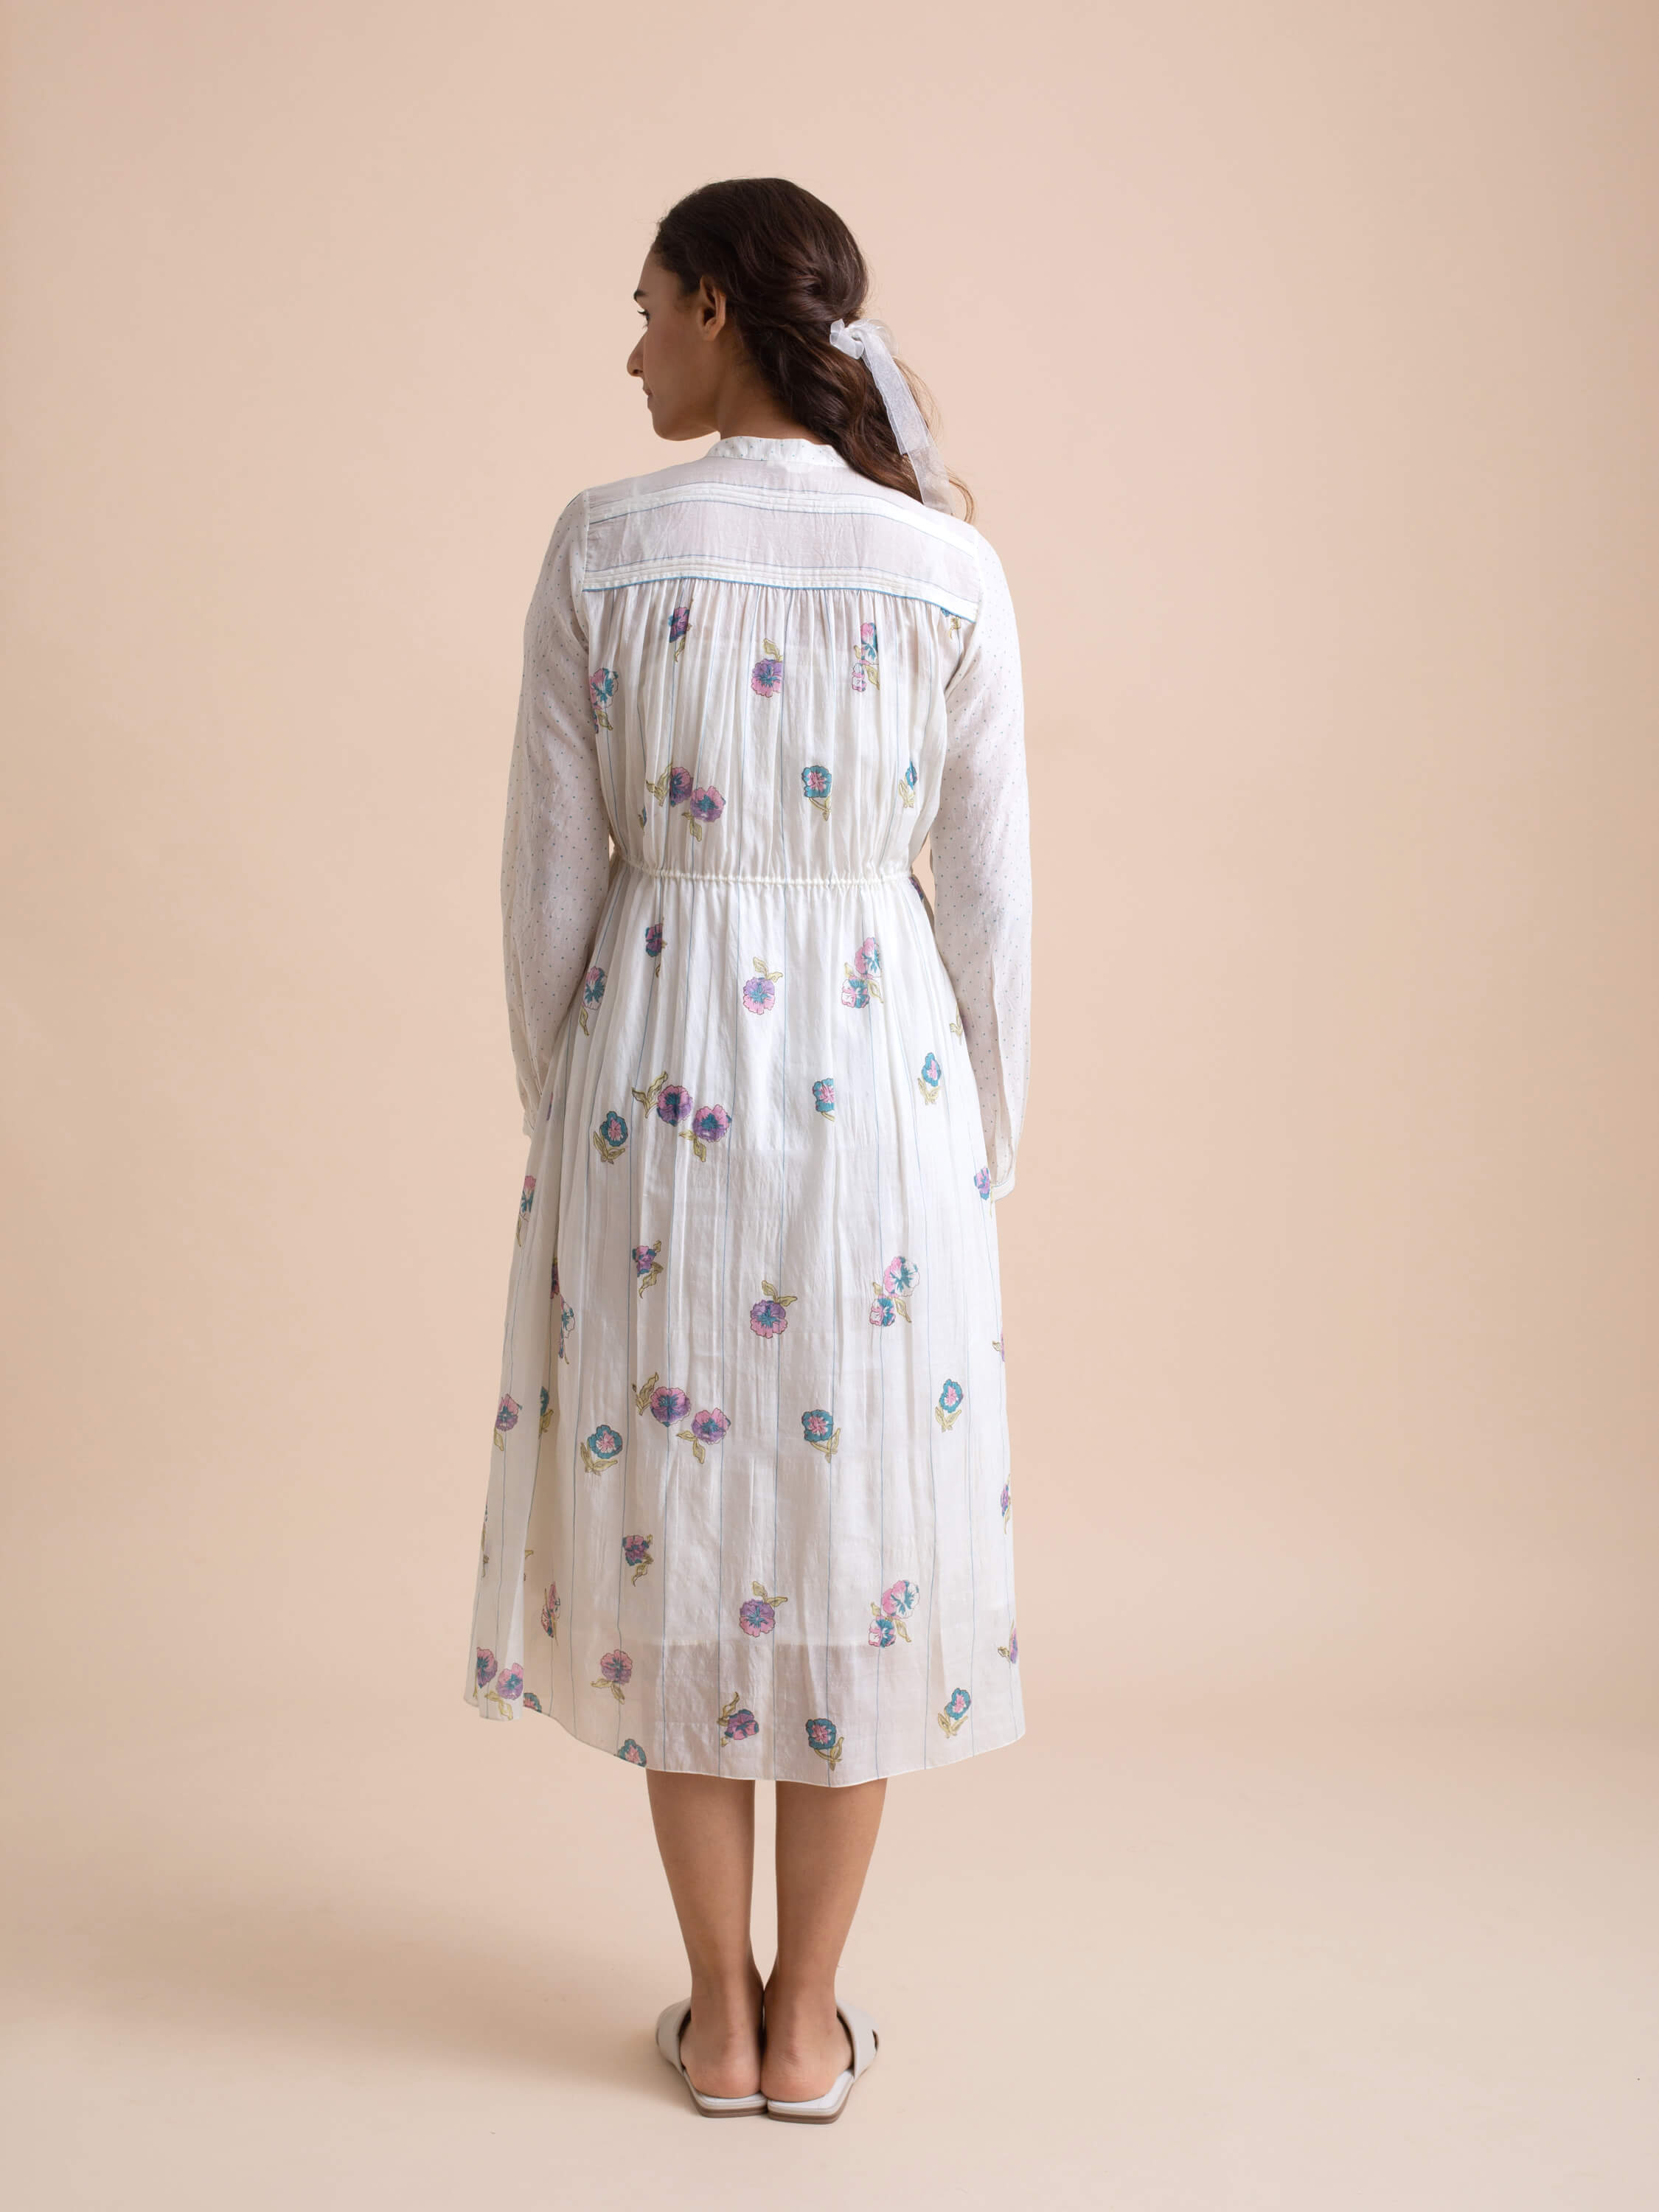 Blooming Violets Dress - BunaStudio